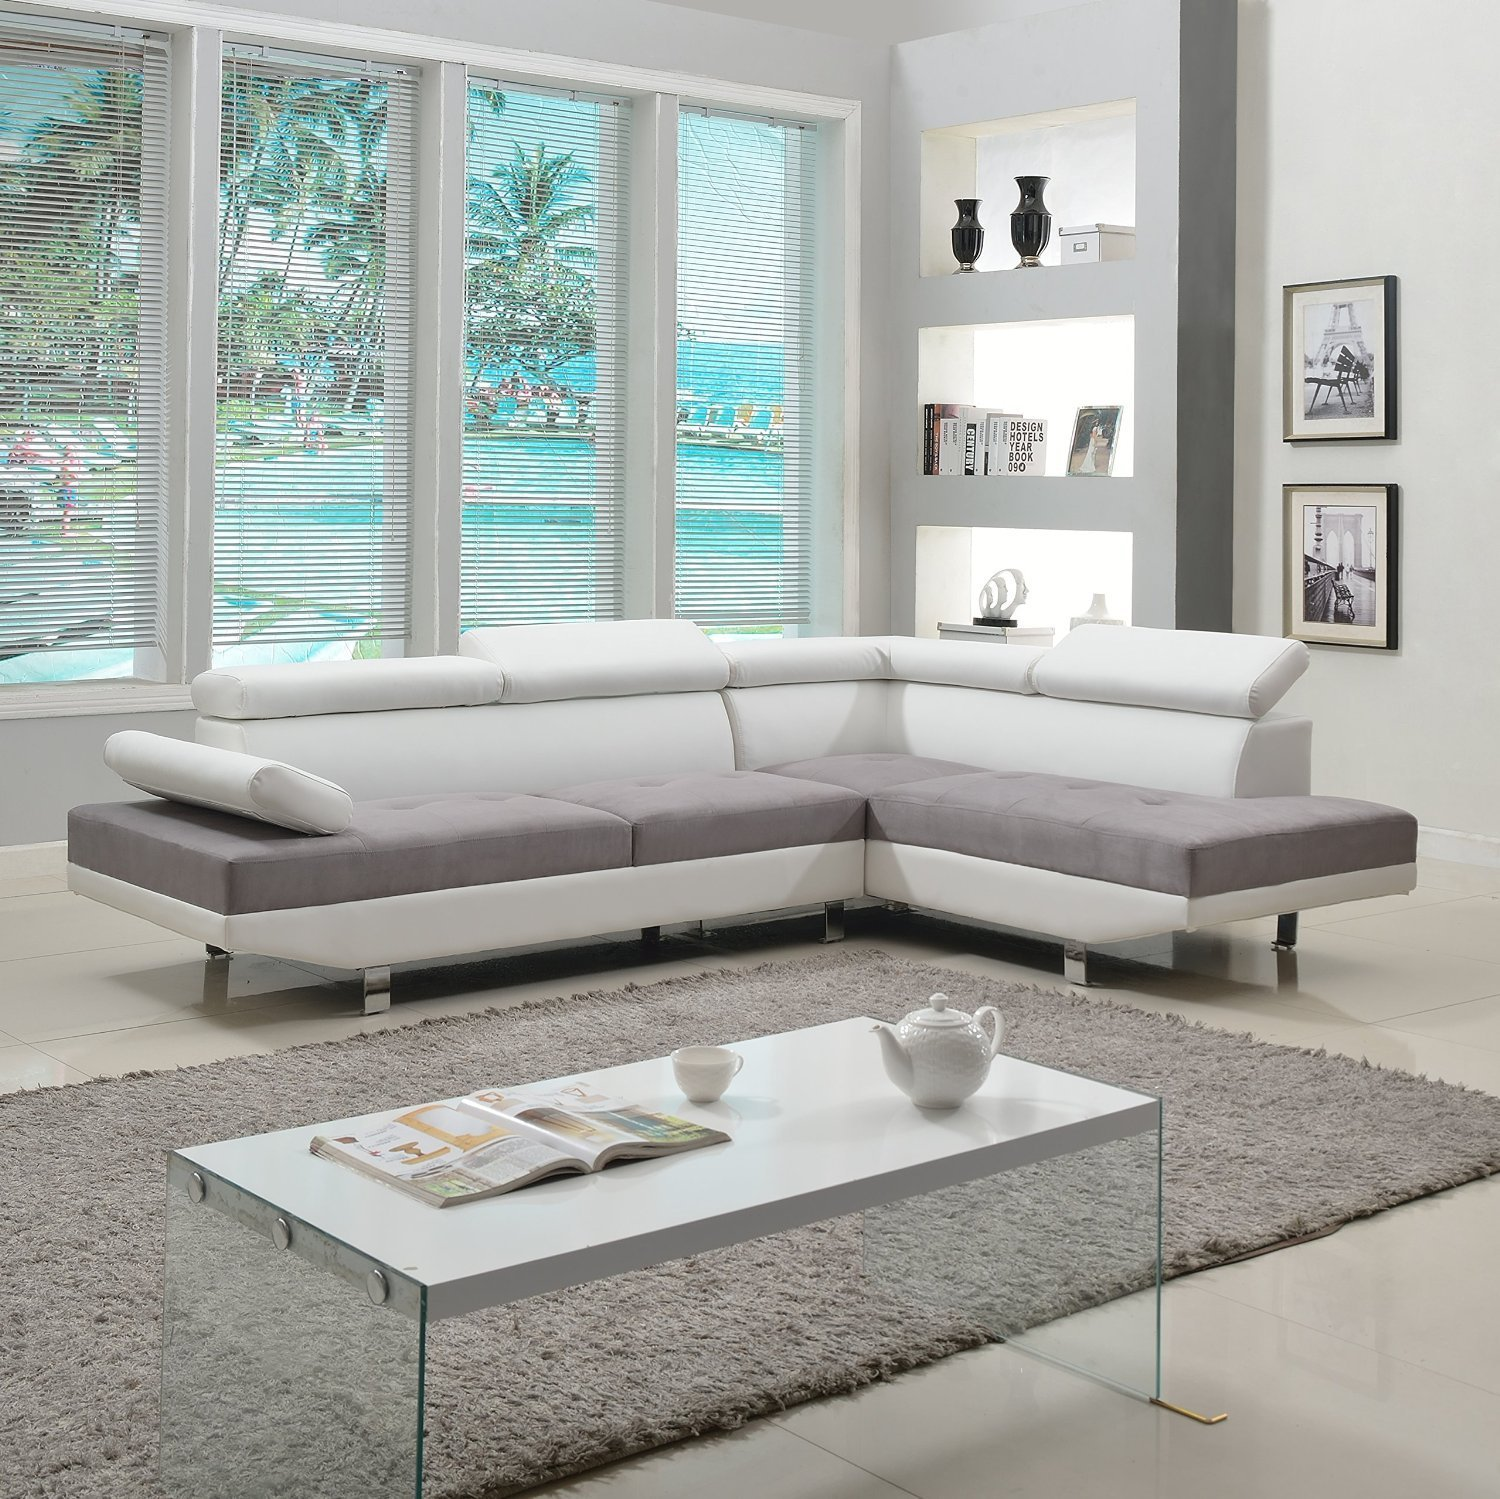 Modern living room furniture review find the best one for The modern furniture